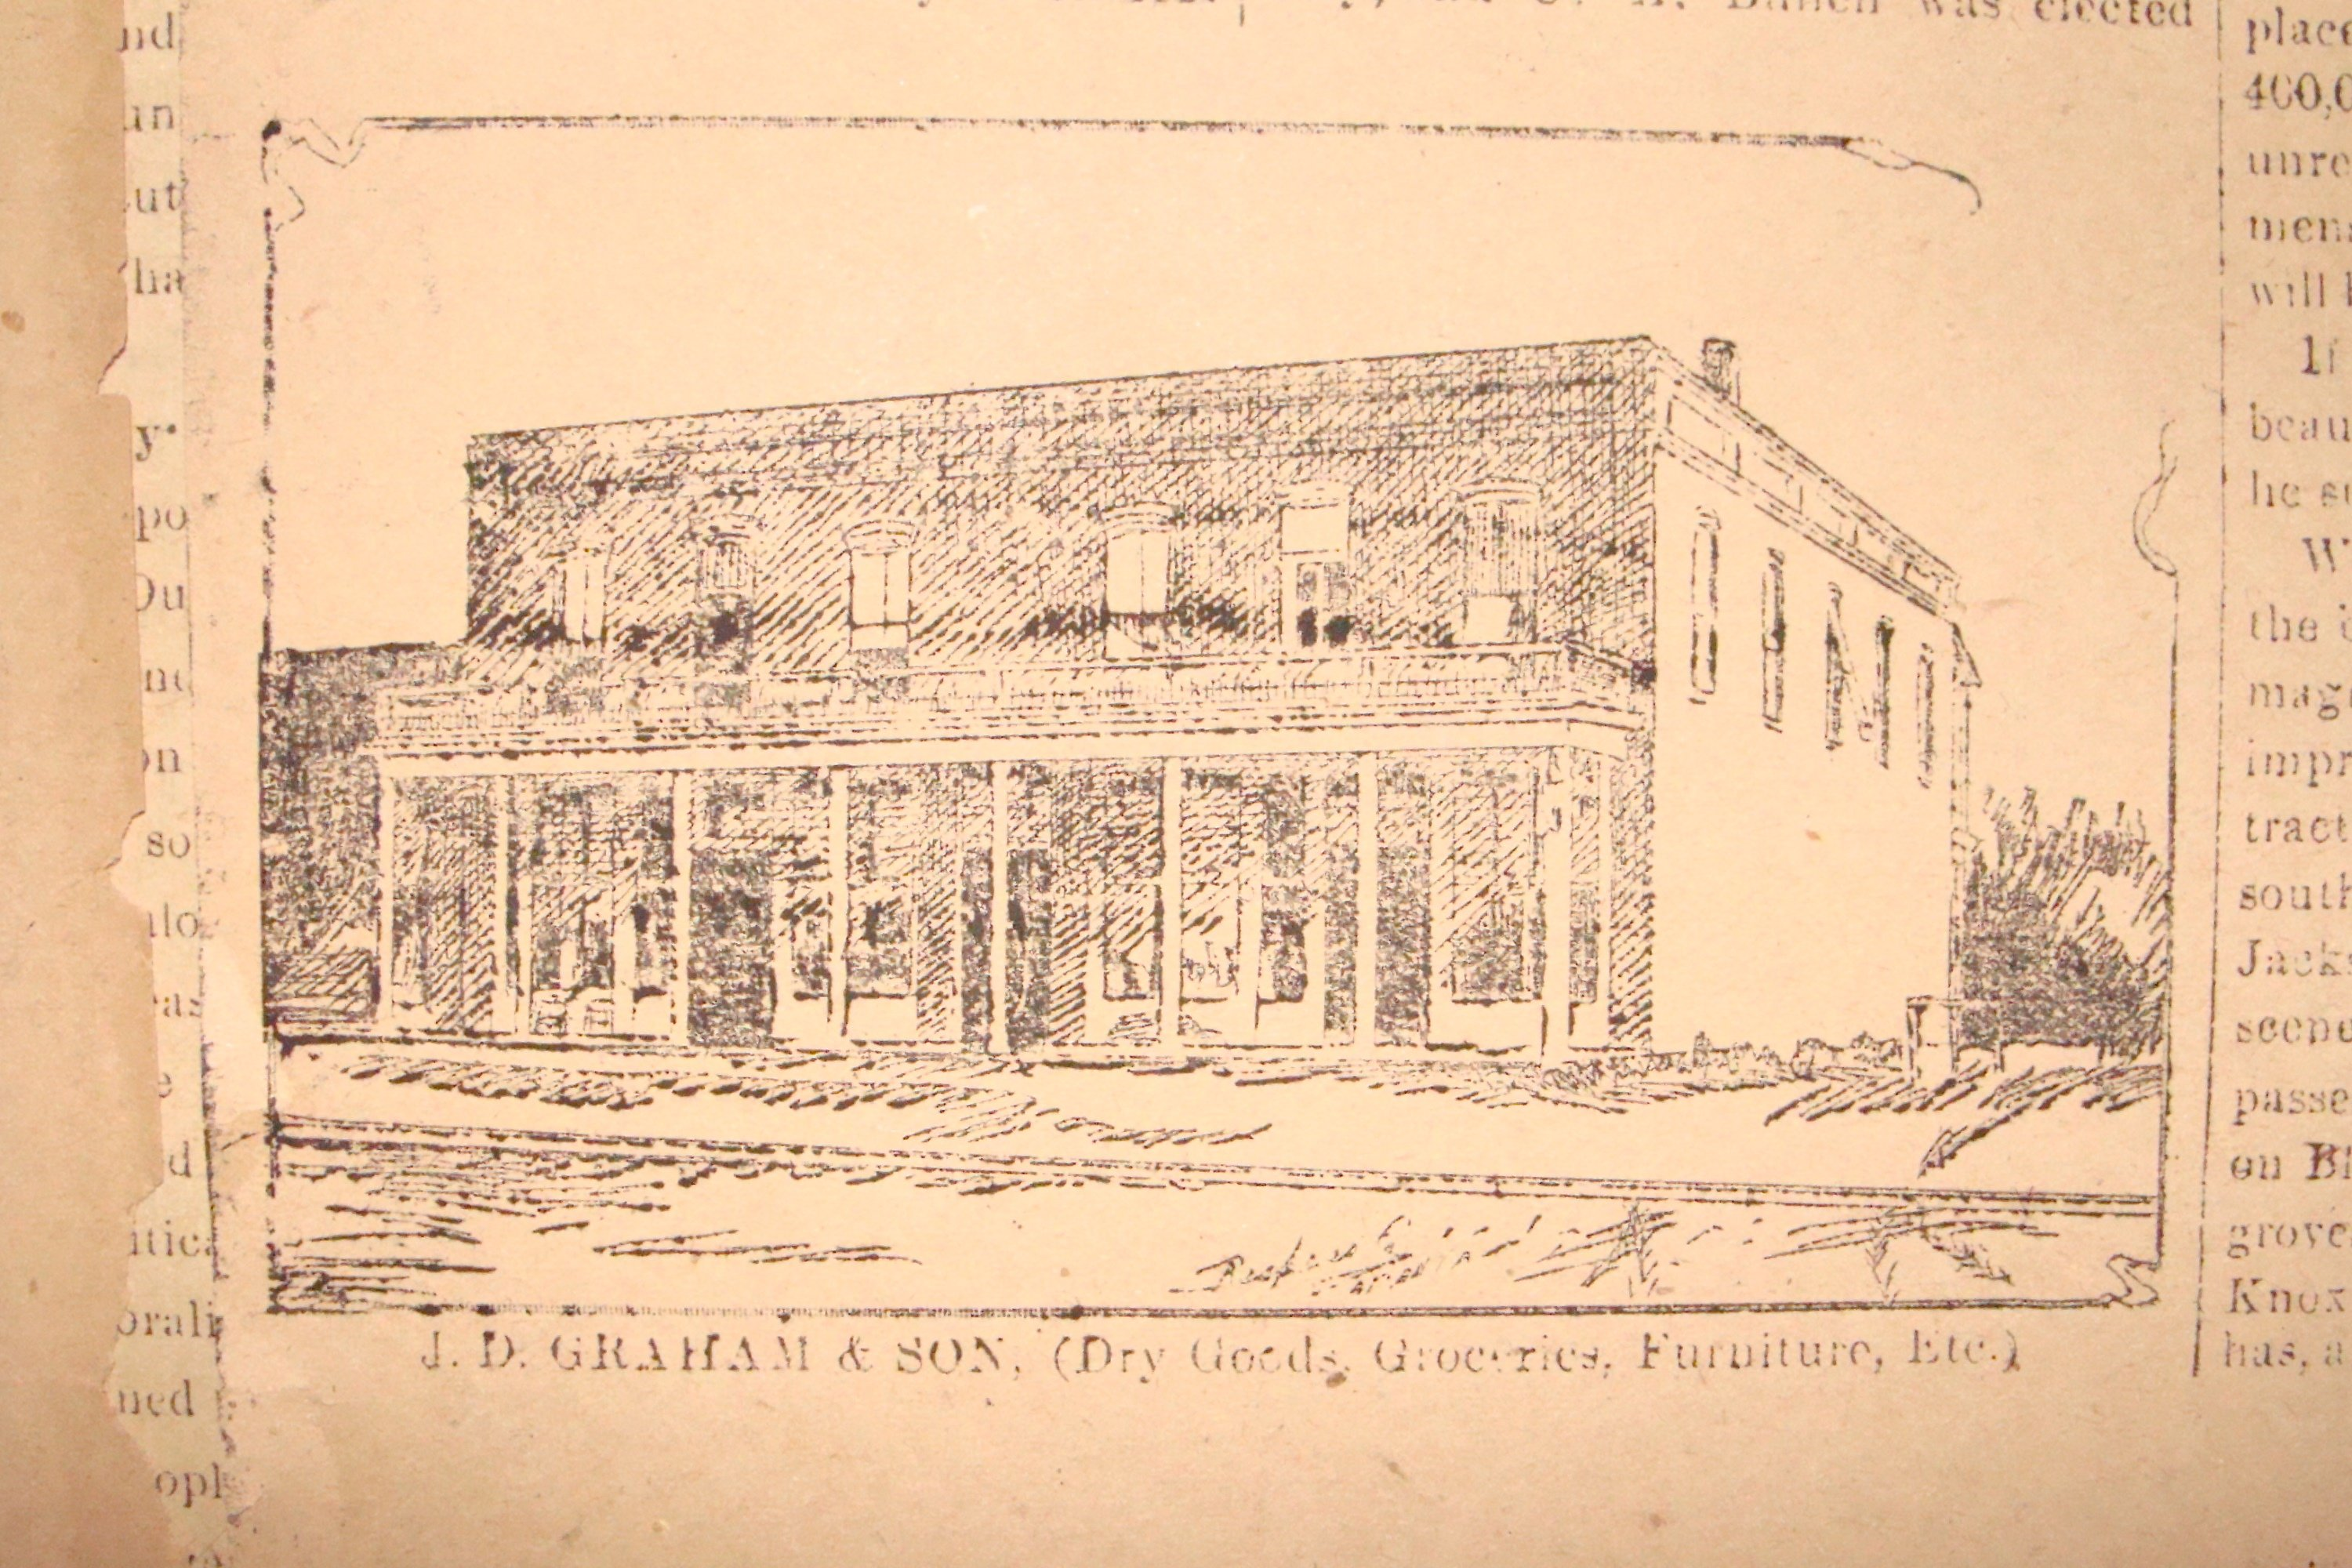 JD Graham & Son General Store located on East Graves Avenue, advertisement in the Orange City Dispatch. April 14, 1894. Florida Historical Society.